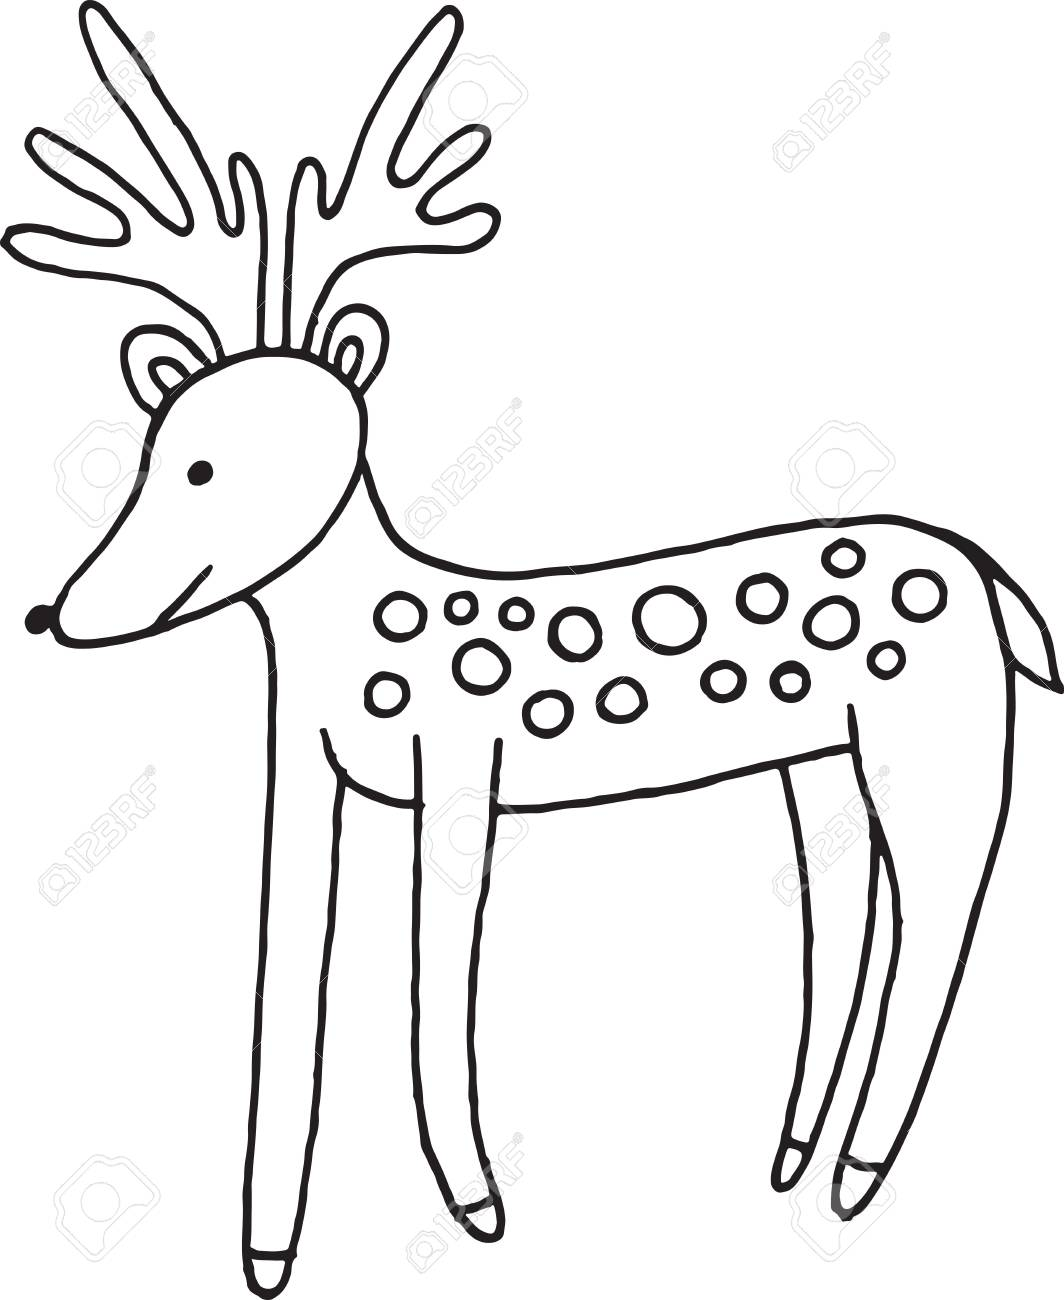 Forest Animal Deer Doodle Cartoon Simple Illustration. Kids Drawing Style Coloring  Page. Stock Vector